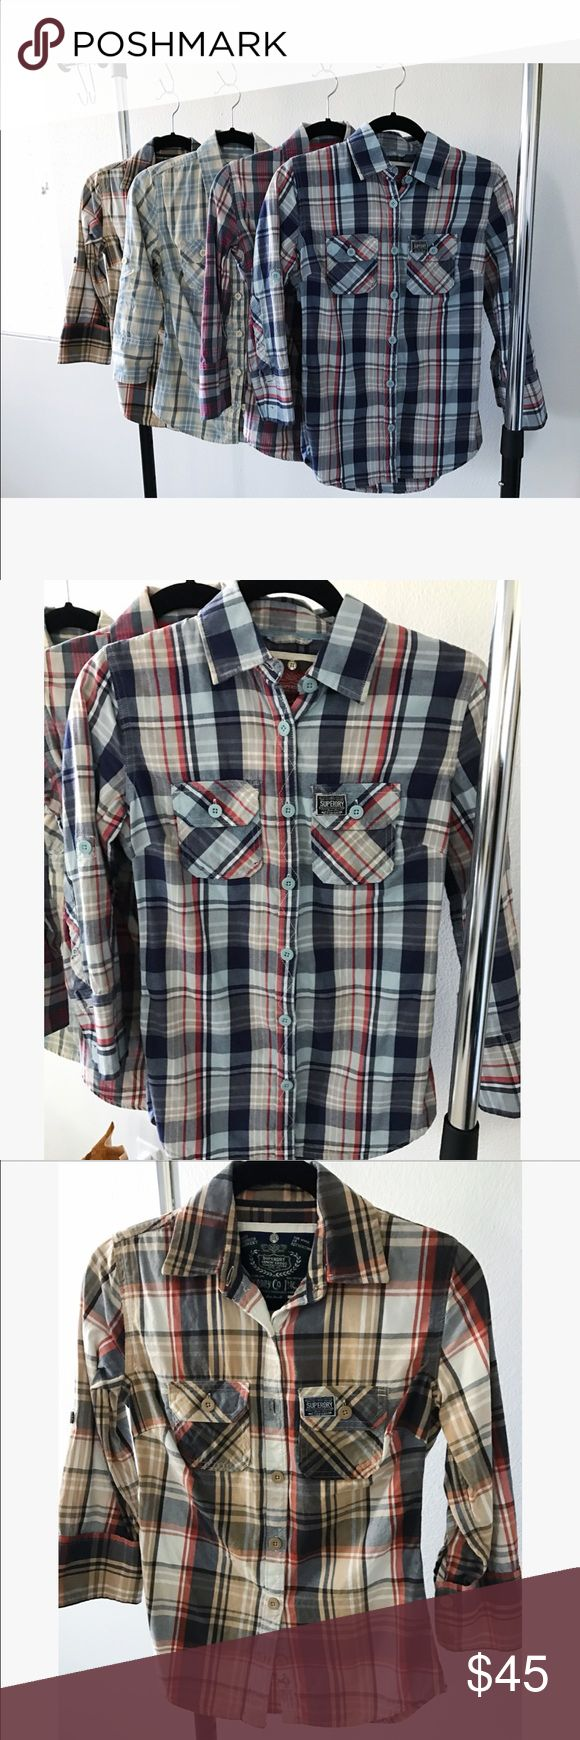 Superdry BUNDLE 4 Plaid Shirts Small Selling bundle of 4 Superdry Plaid button down shirts. All size small. Like new condition. Superdry Tops Button Down Shirts